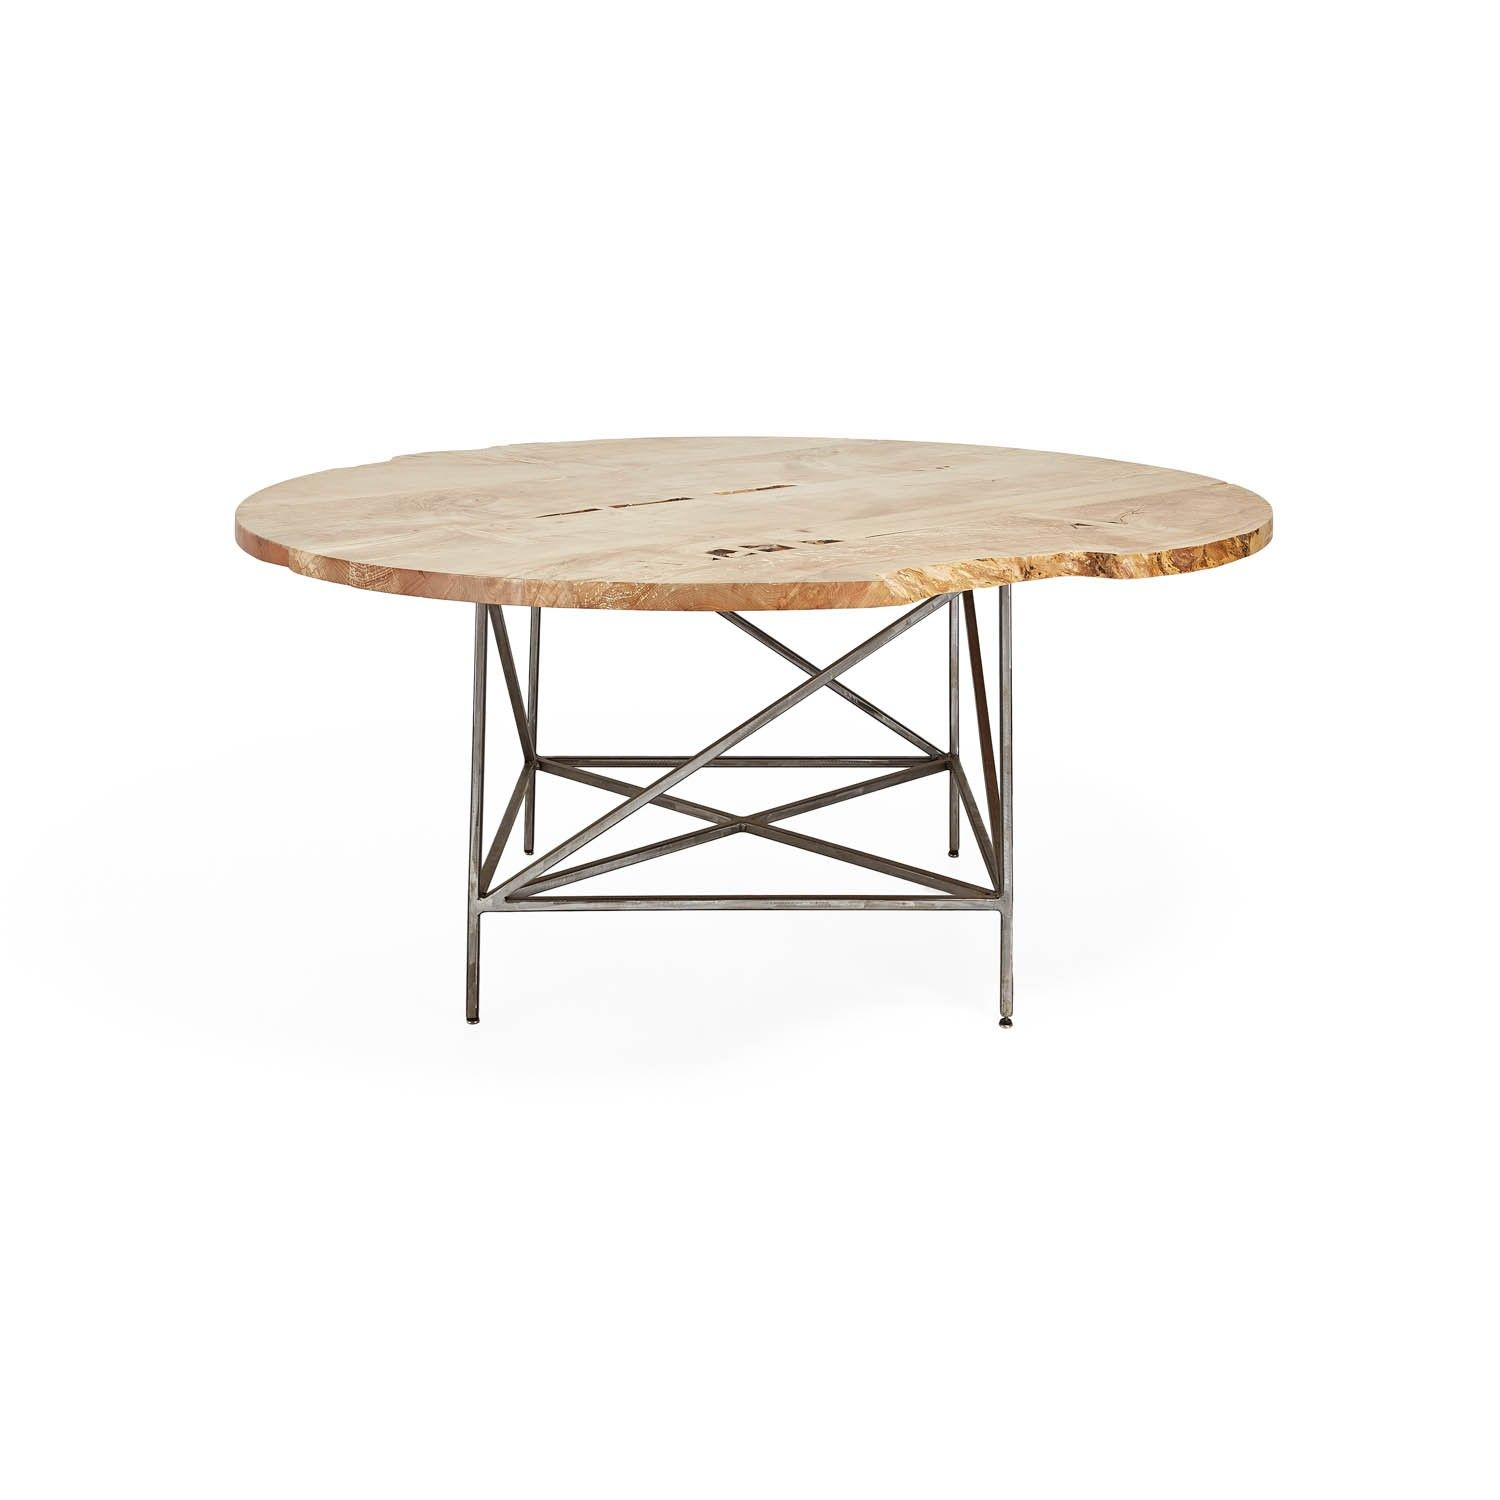 Discover The Jim Denney Bleached Maple Dining Table At ABC Carpet Home Crafted From Spalted Wood And Naturally Its Organic Form Recalls